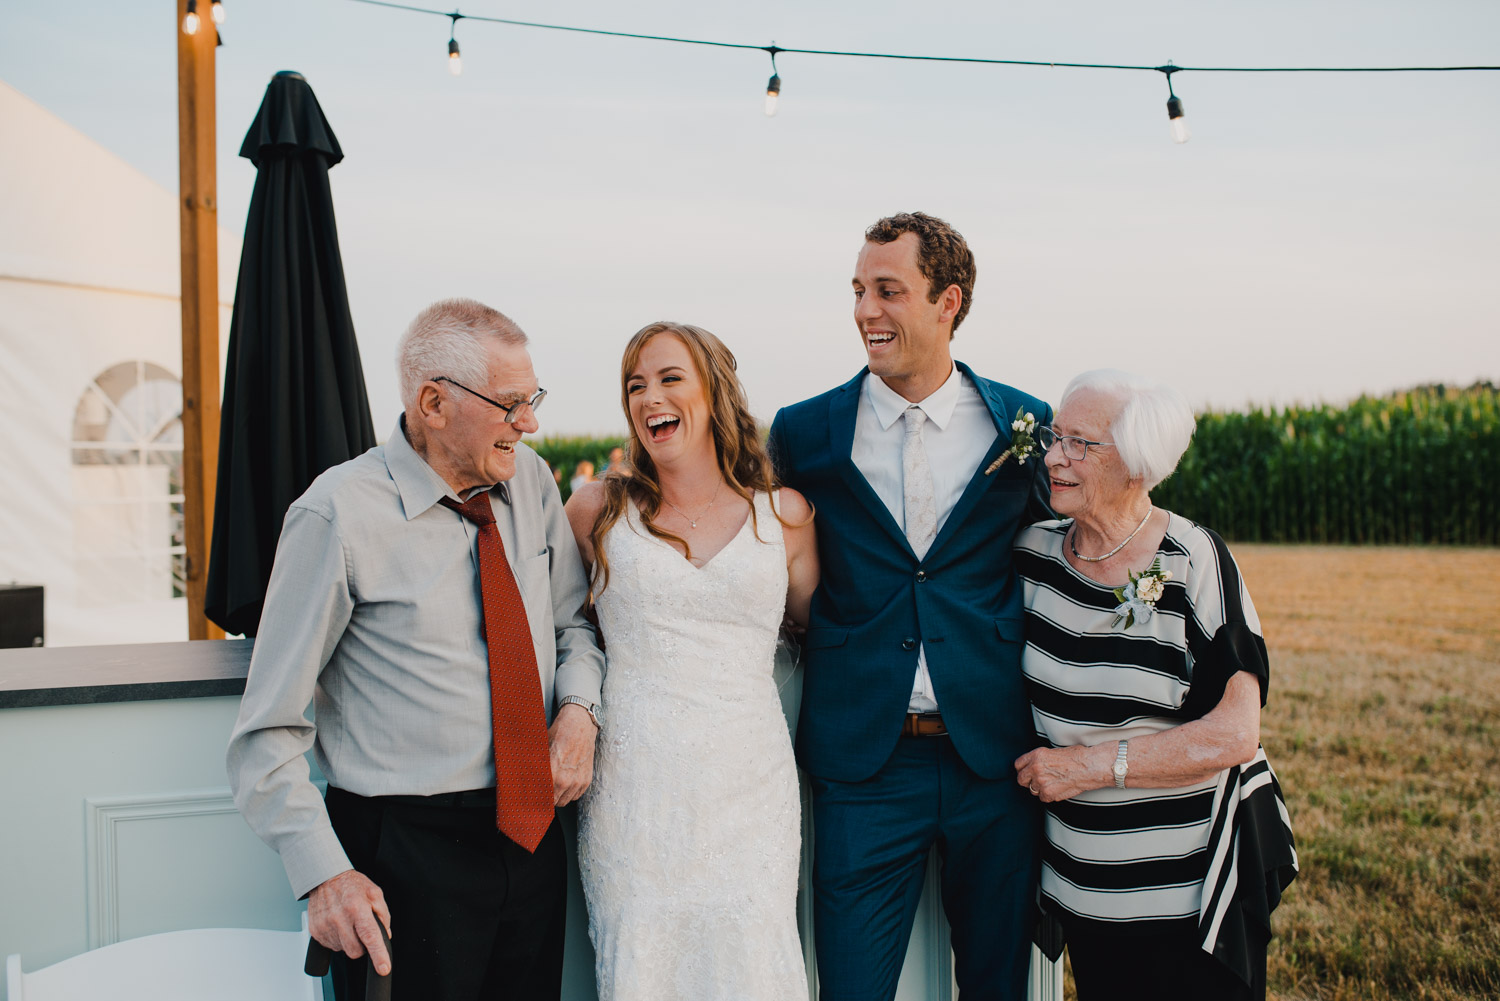 The bride and groom and their grandparents laughing together